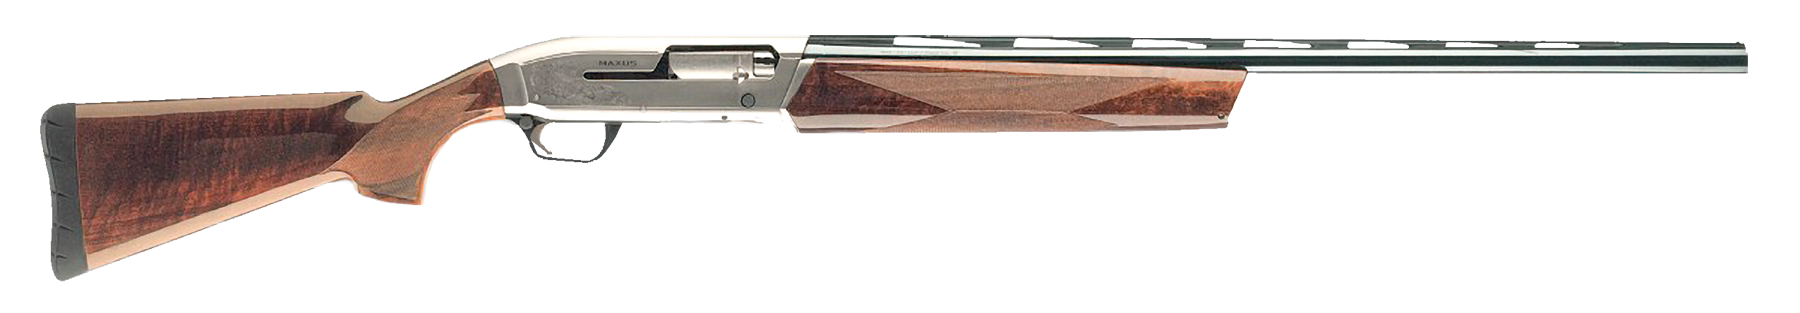 Browning Maxus Hunter Semi-Auto Shotgun 3'' 12 Gauge 26'' Nickeled Aluminum Alloy/Blued Barrel - Walnut